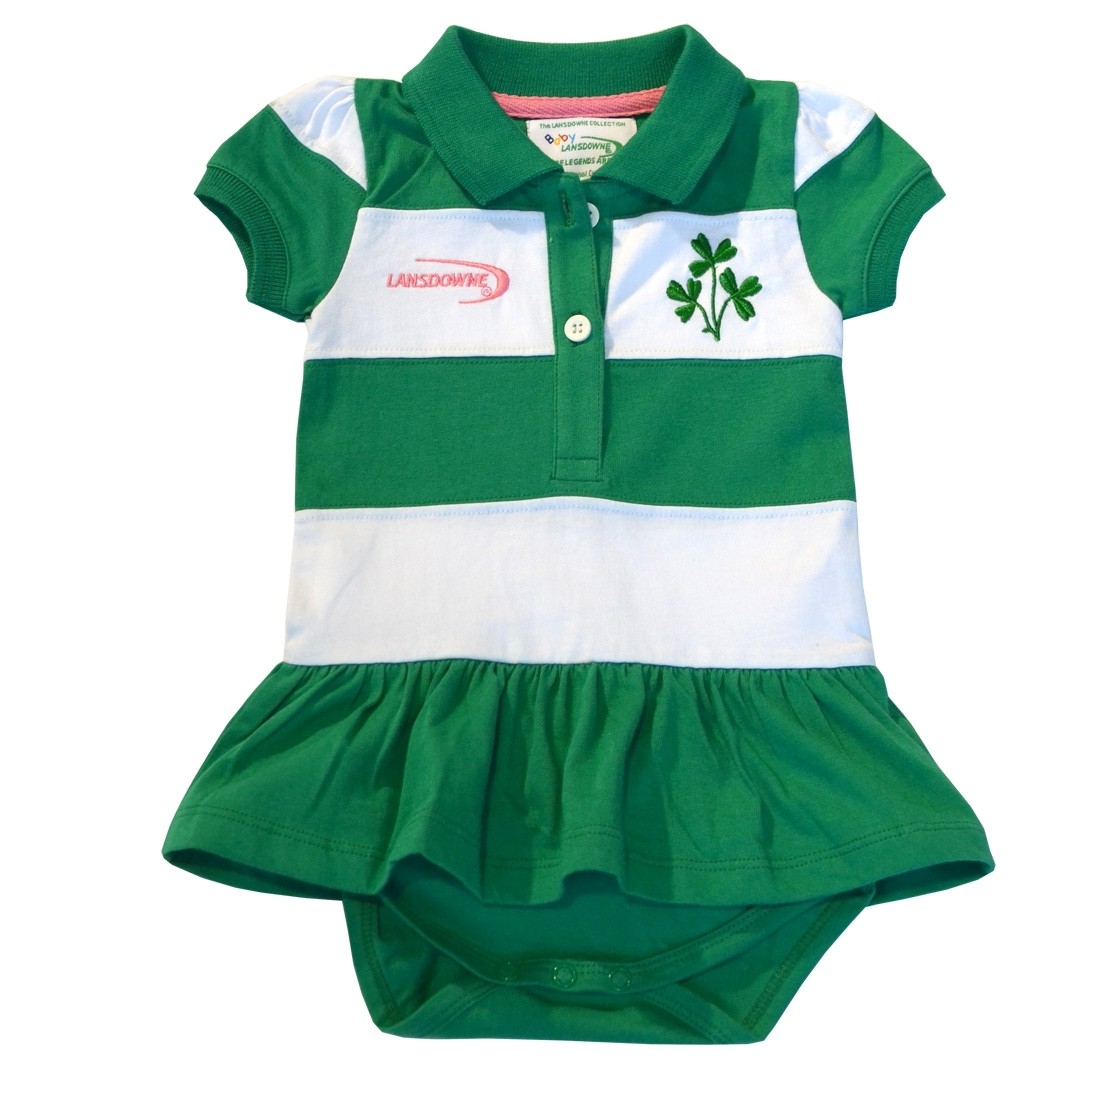 bd320c8e3 Ireland Baby Onesie Dress | Buy Irish Shamrock Dresses for Infants | Baby  Girls Irish Dress with Shamrocks -Irish Expressions Gift Shop